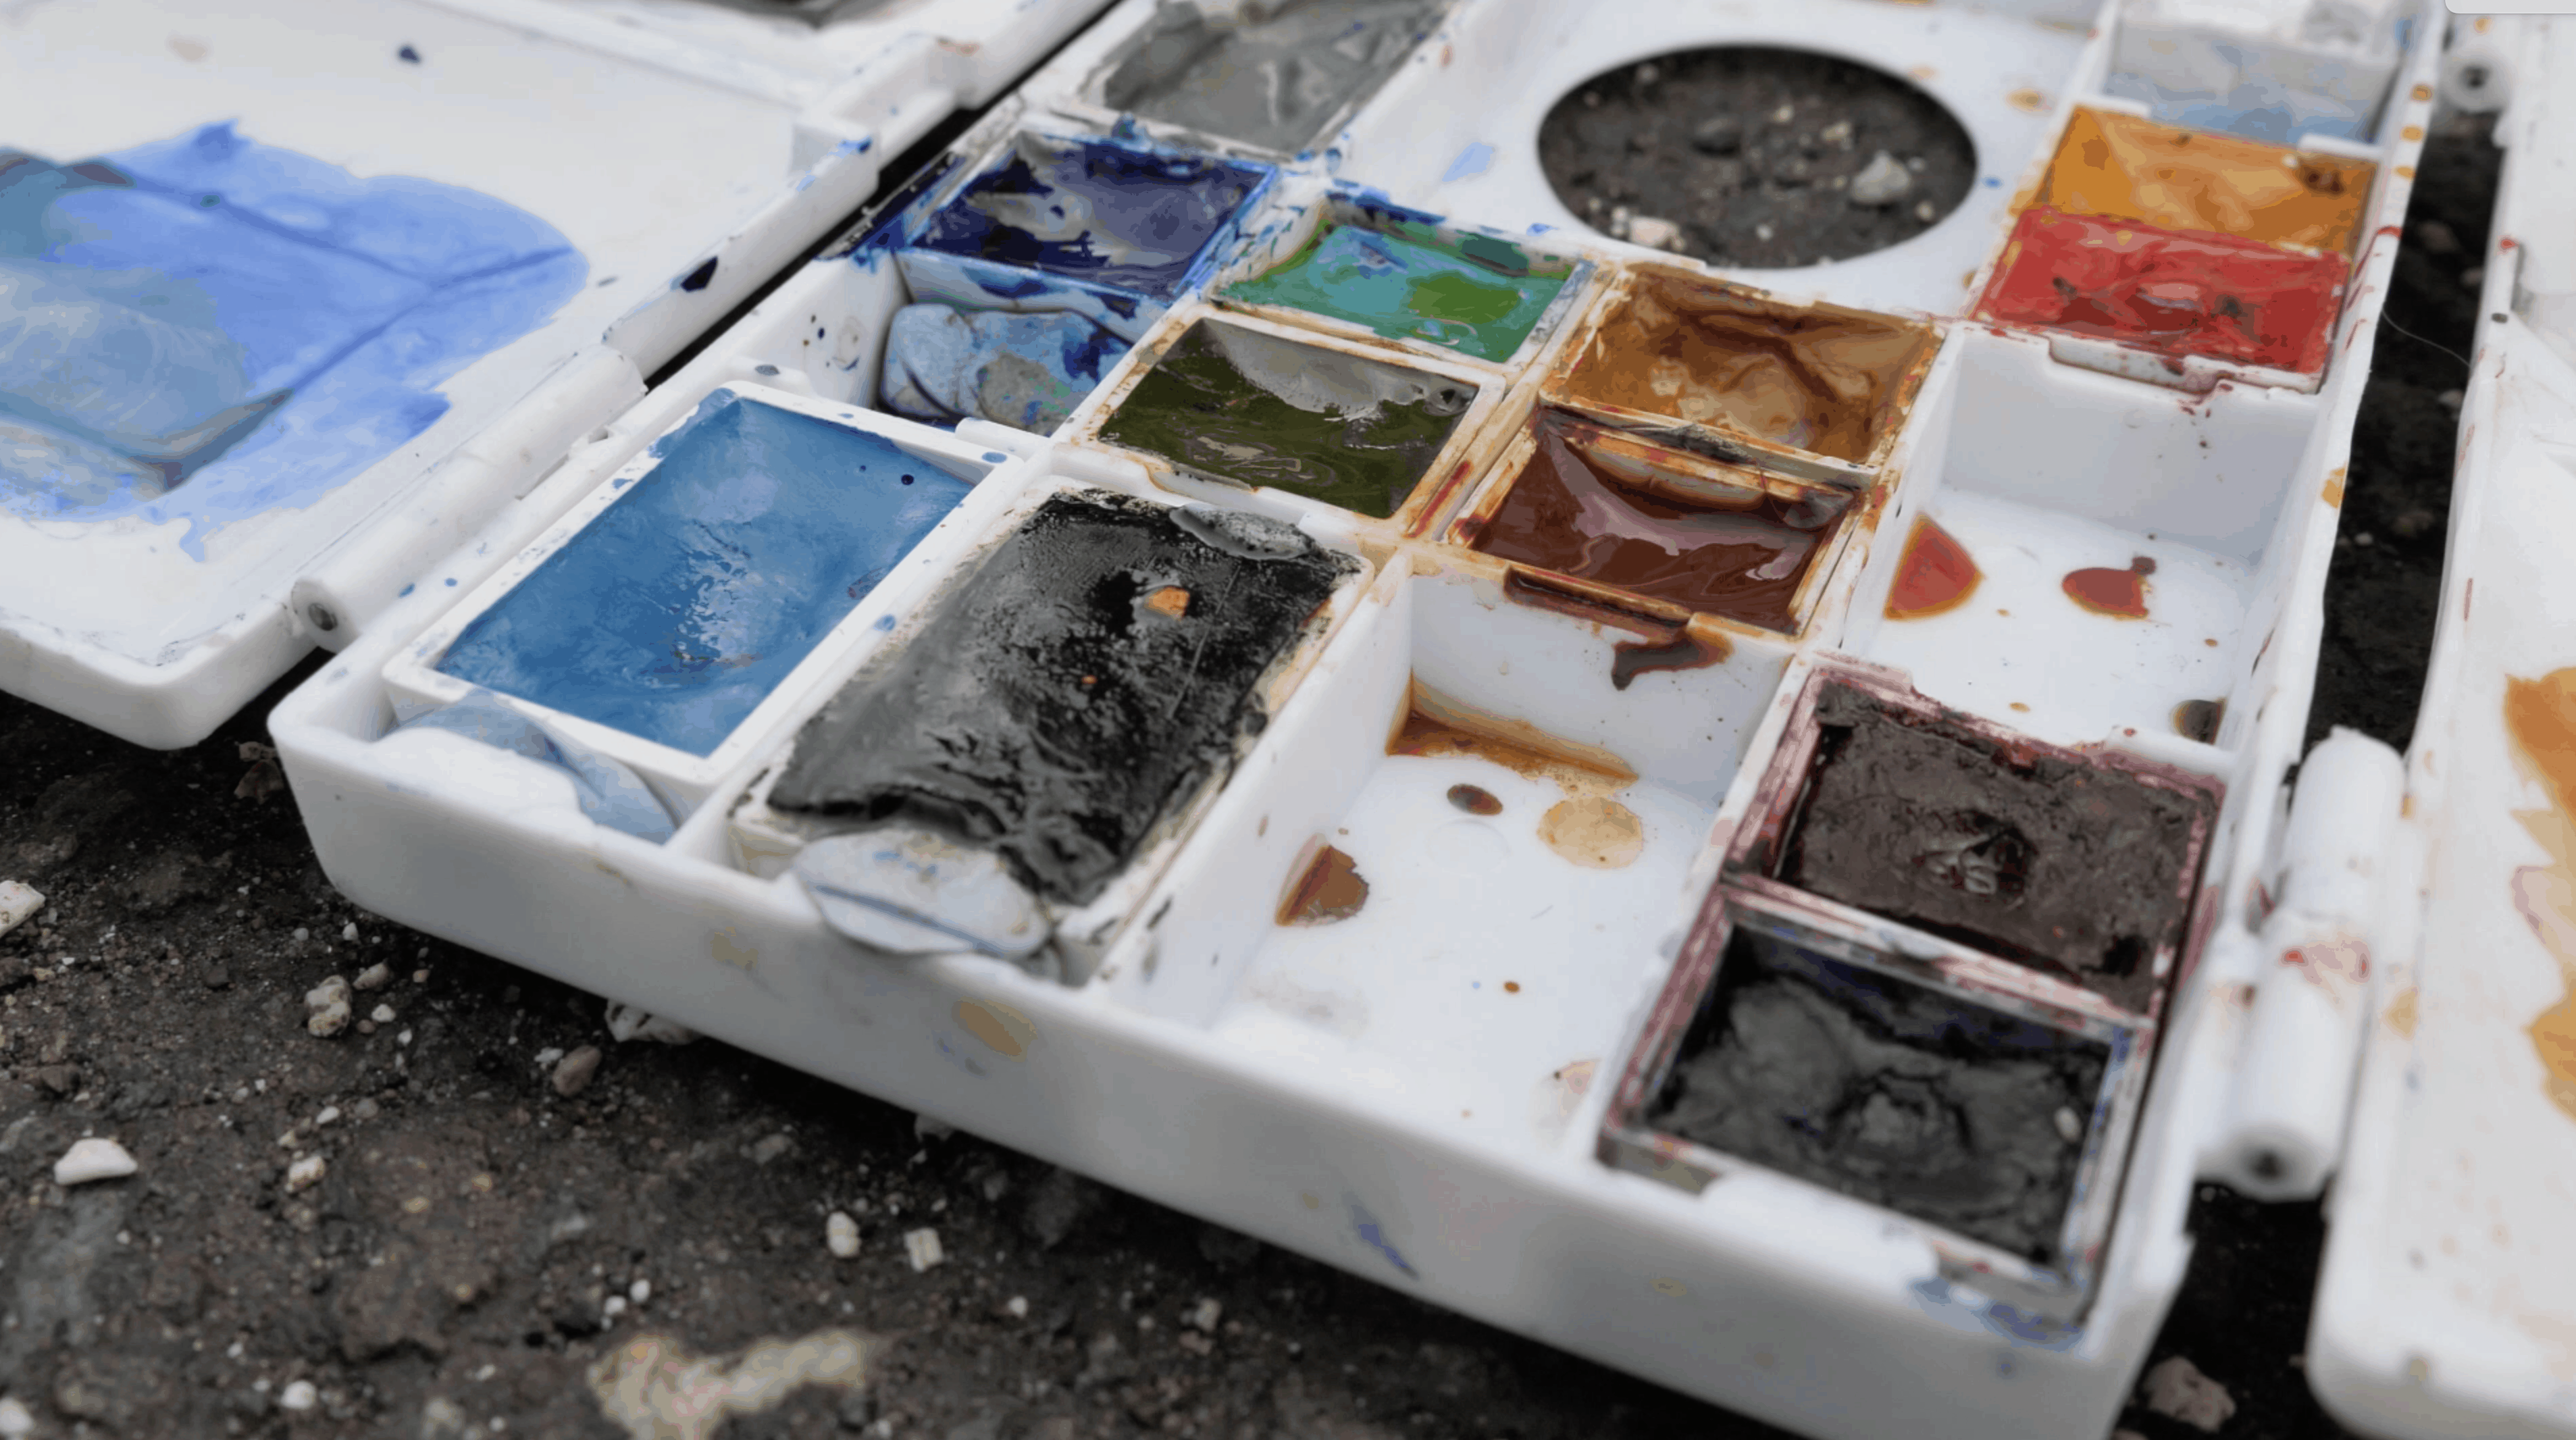 Watercolors: Supplies for Urban Sketching